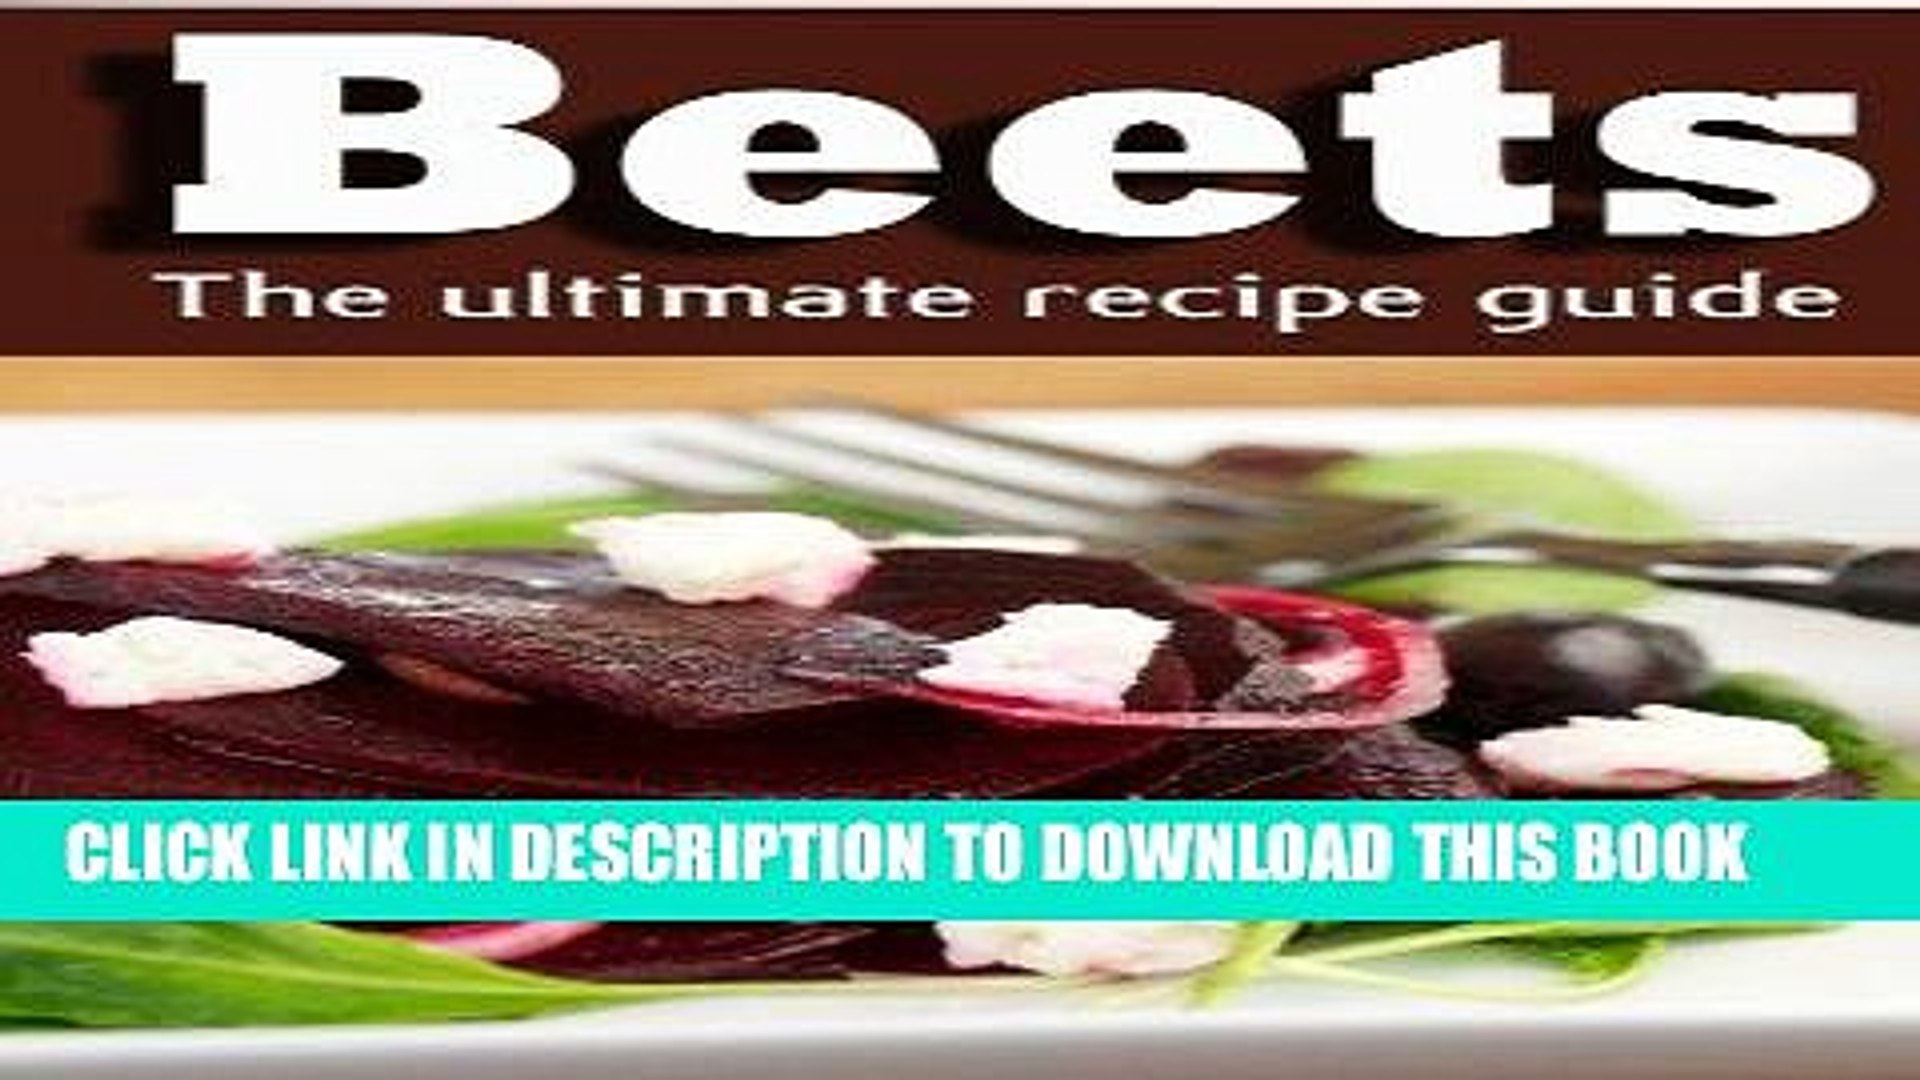 [New] Ebook Beets: The Ultimate Recipe Guide! Free Online